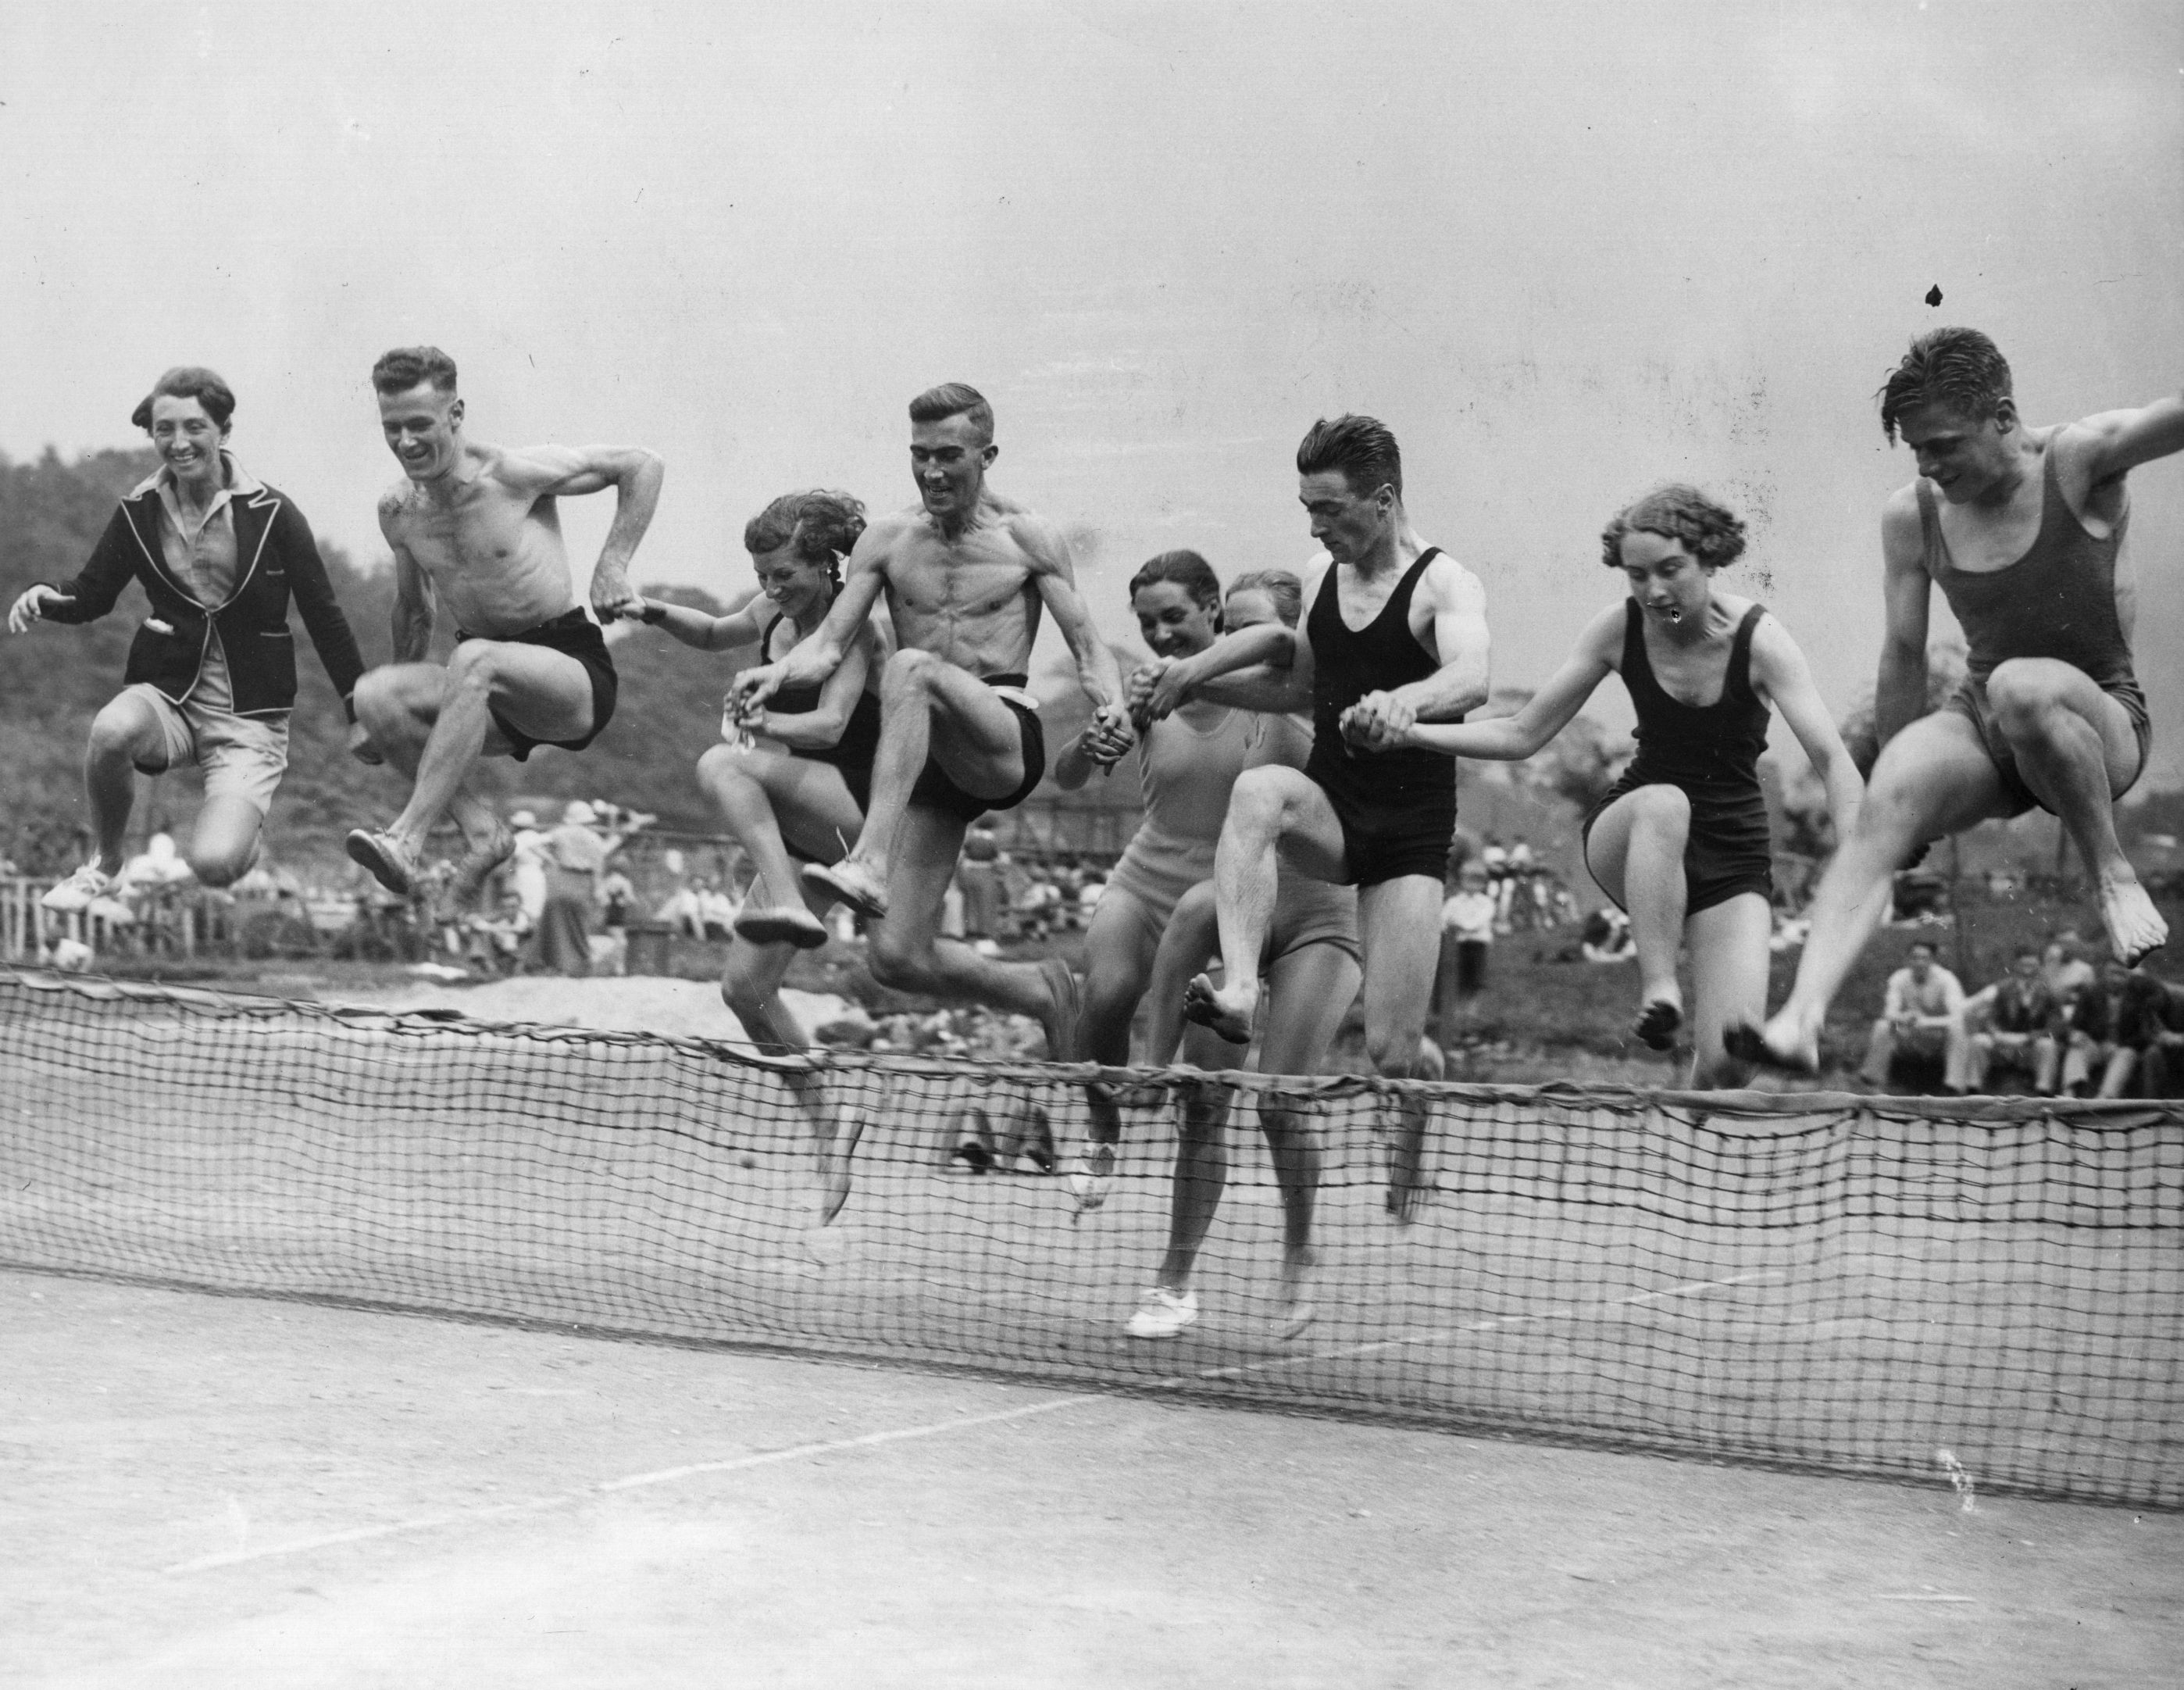 Sunbathers enjoy some fun and games at a tennis court near a lido at Castle Mill, Cheshire, August 1936